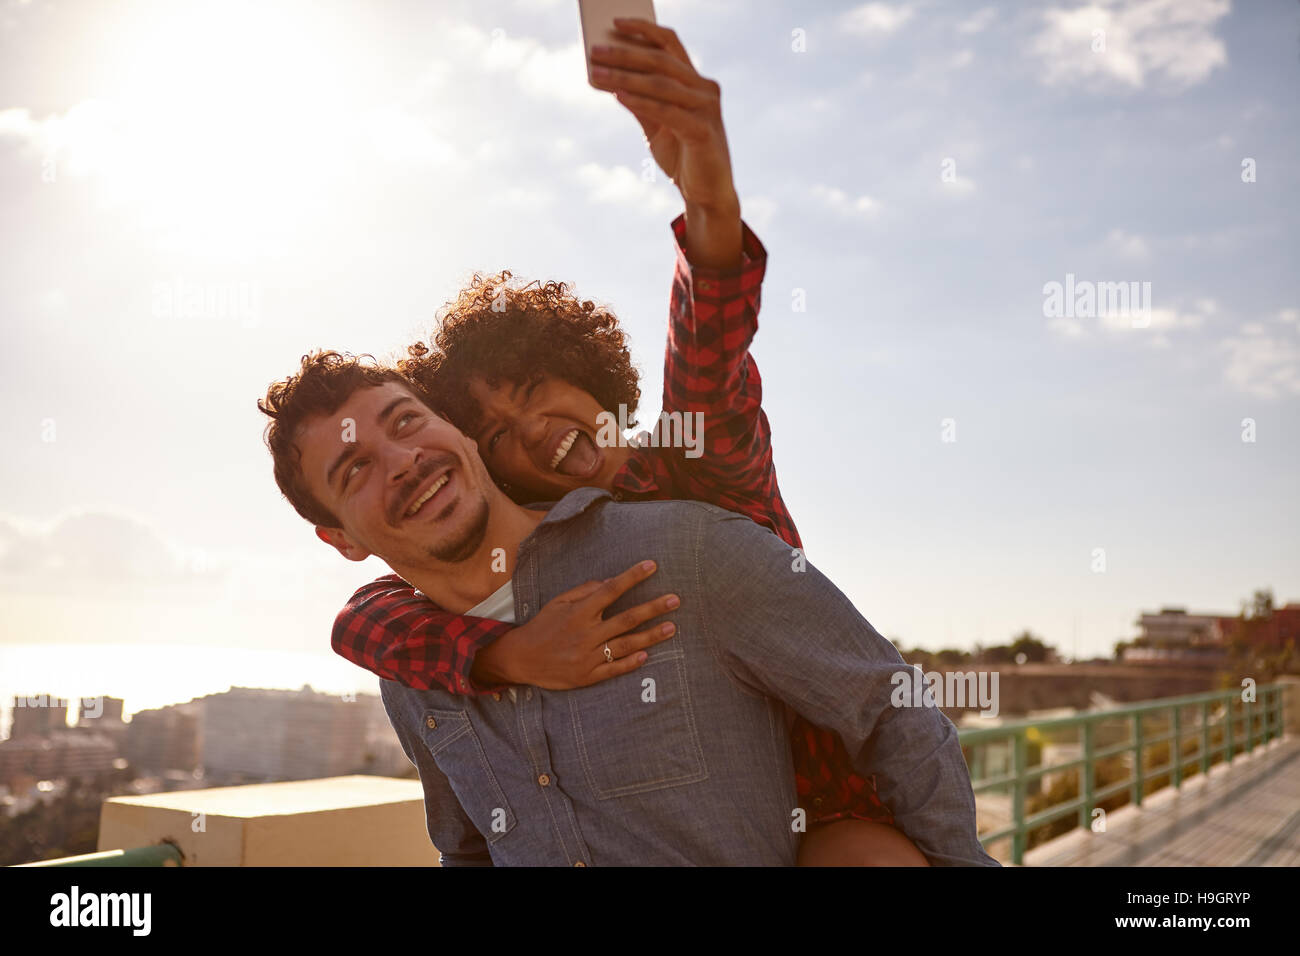 Piggy back riding girl with open mouth, taking a selfie of them while sitting on her boyfriend back holding on with - Stock Image